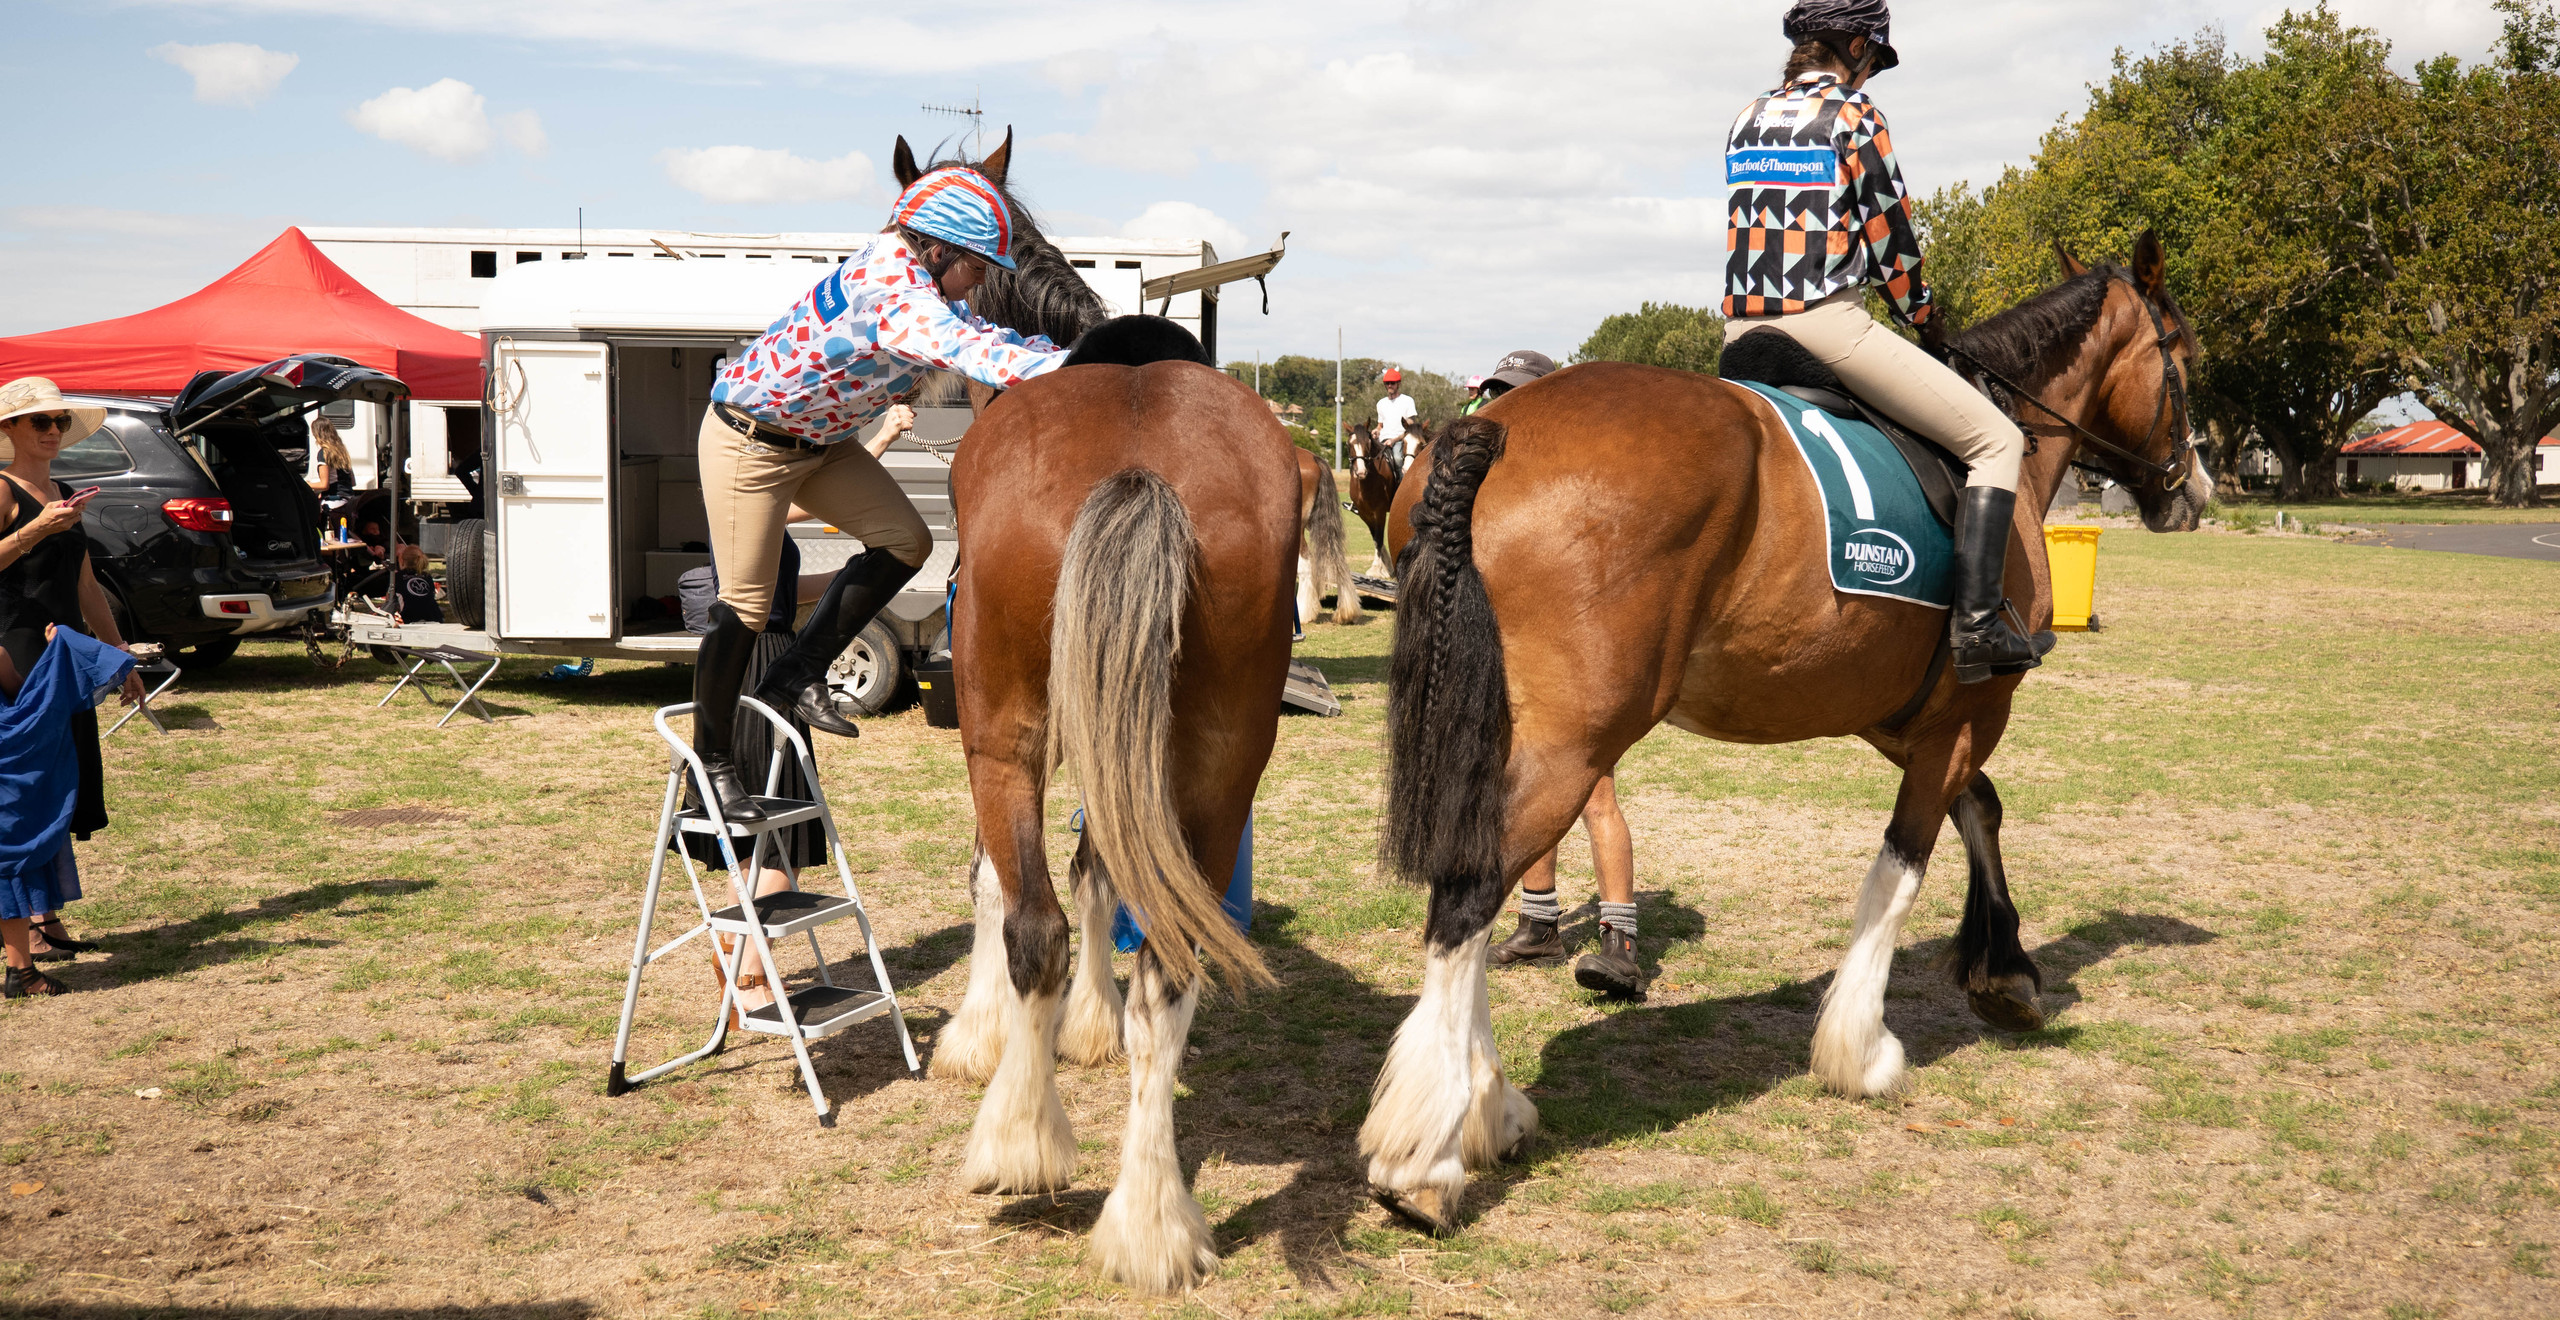 How to get onto a 18hh clydie